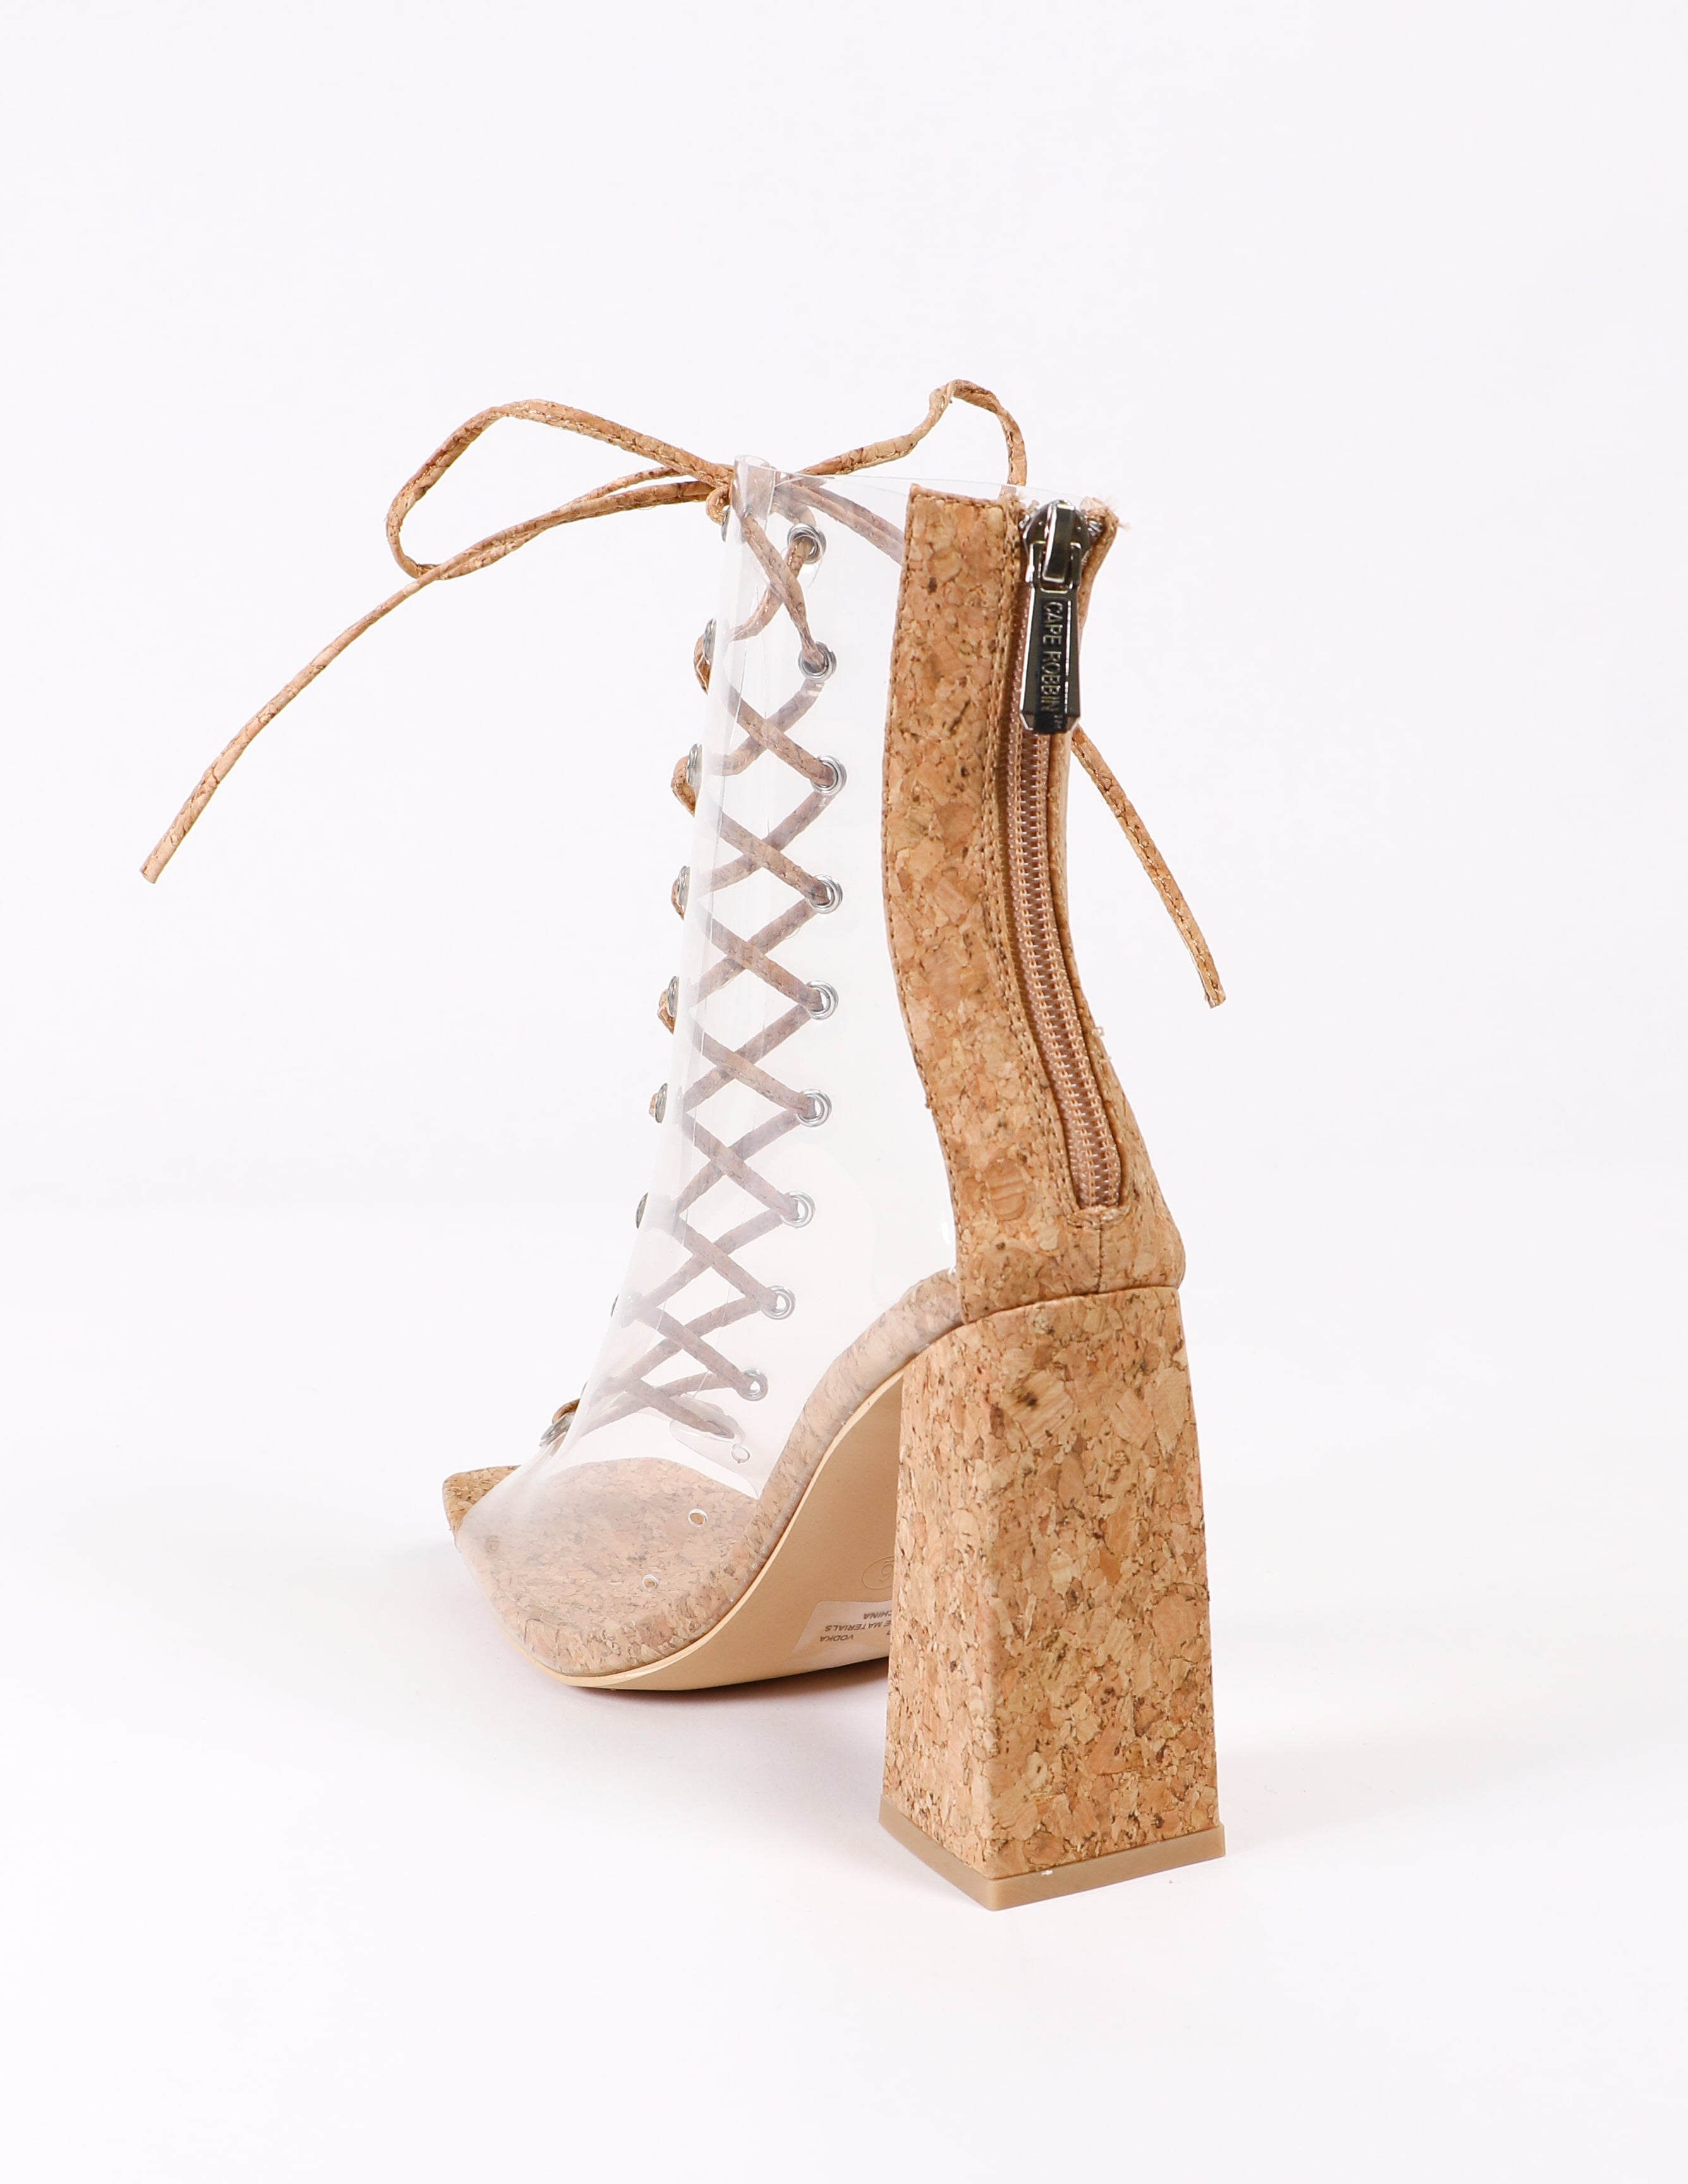 Back of the cork clear lace up heels with back zipper - elle bleu shoes